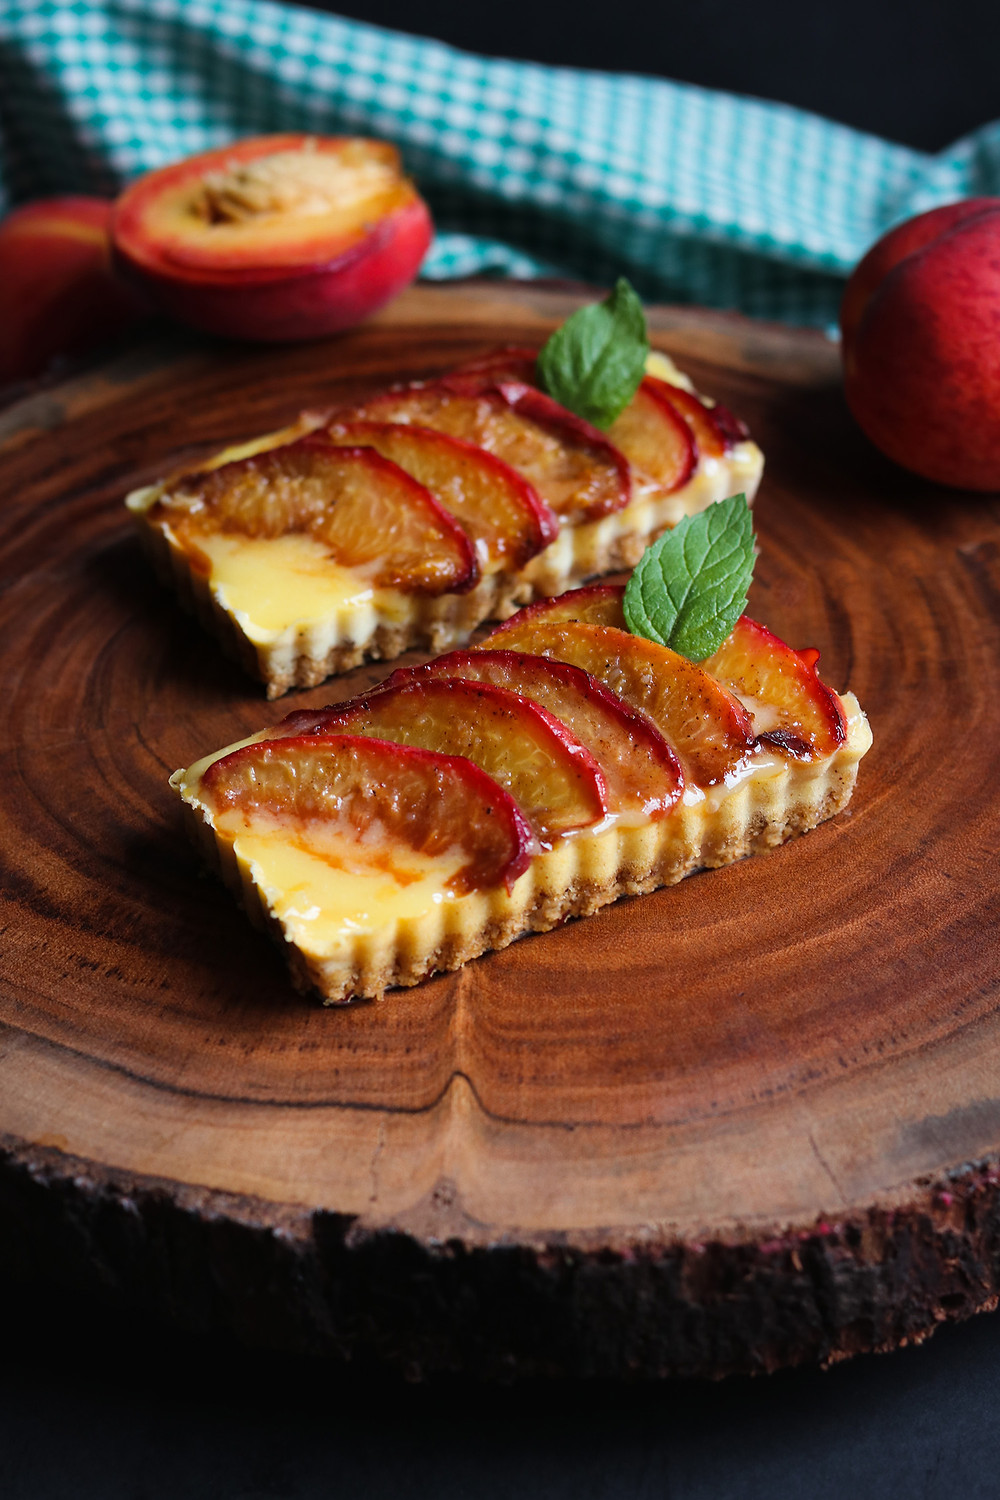 Molasses Roasted Peach and Lemon Ricotta Cheesecake Tart with Lemon Curd and Ginger Snap and Toasted Pecan Crust